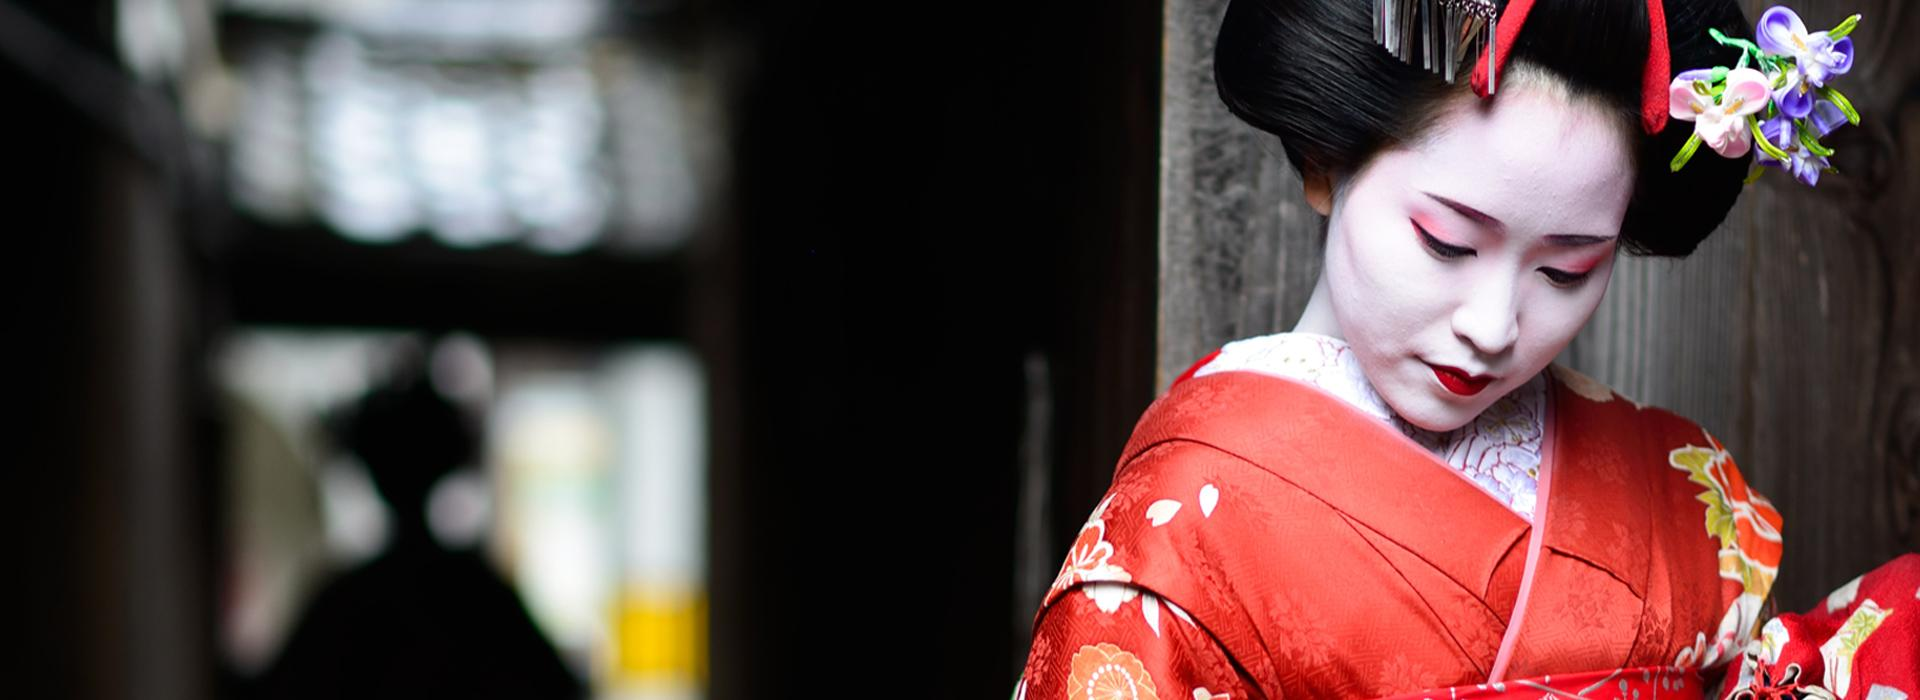 Geisha looking down in red kimono